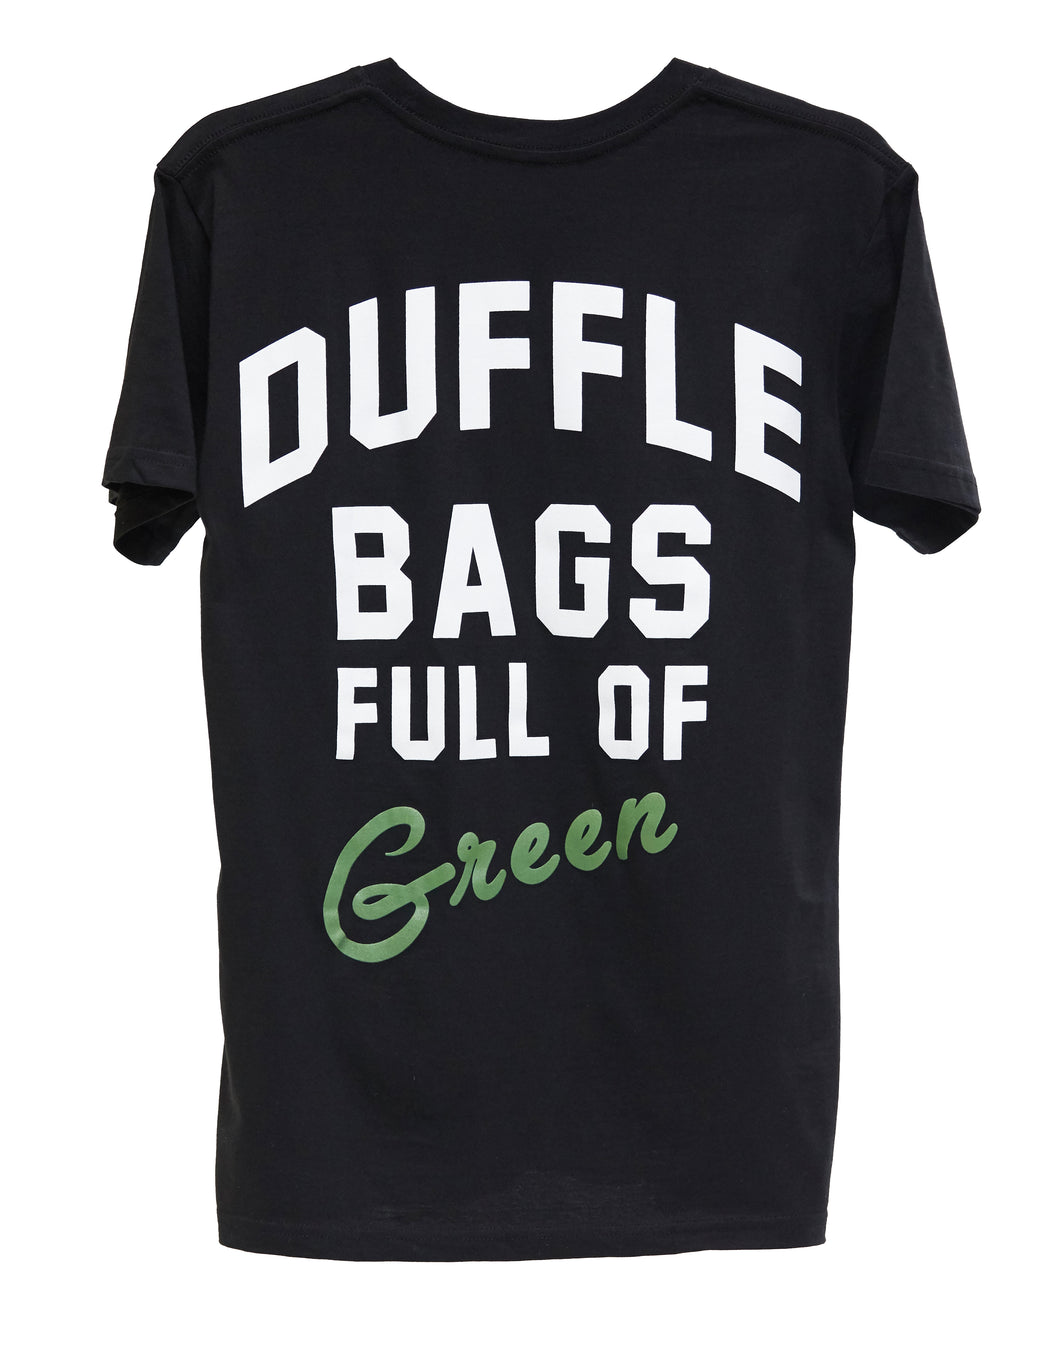 Duffle Bags Full of Green T-Shirt